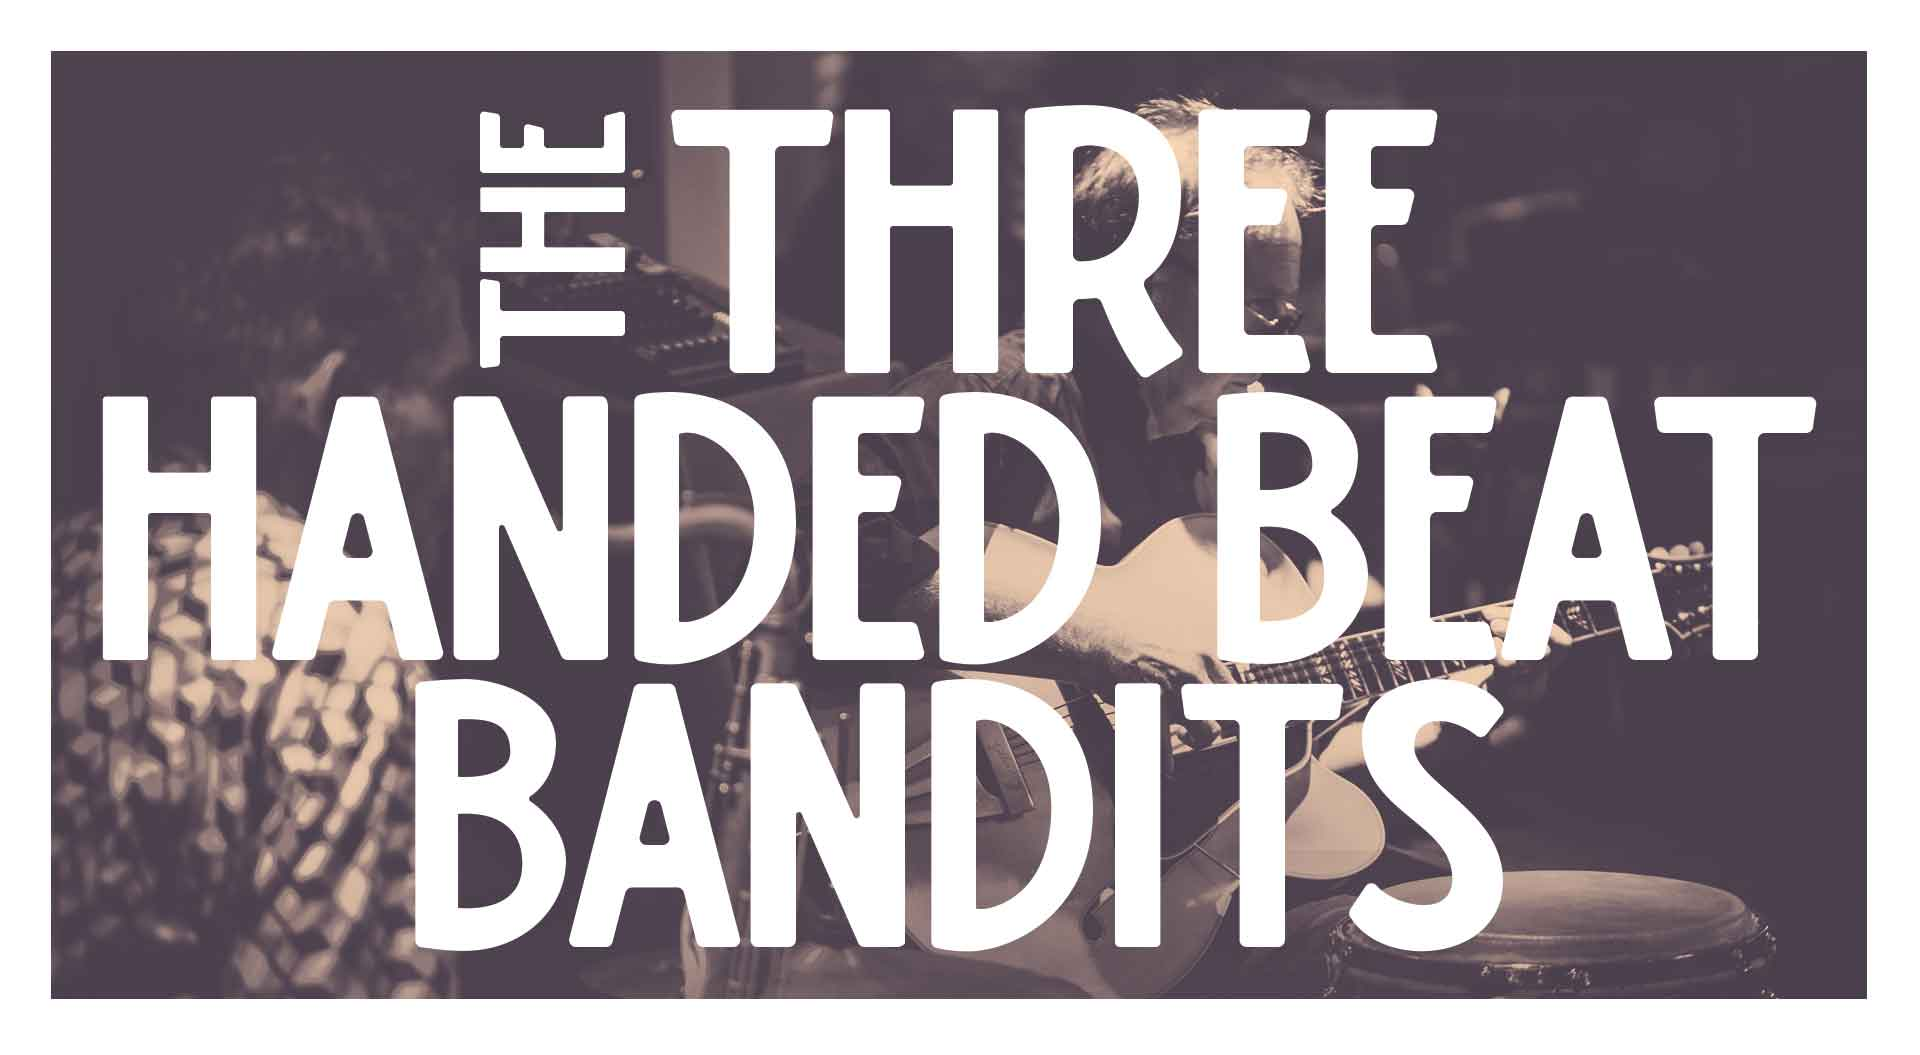 Three Handed Beat Bandits: Saturday Night Jazz